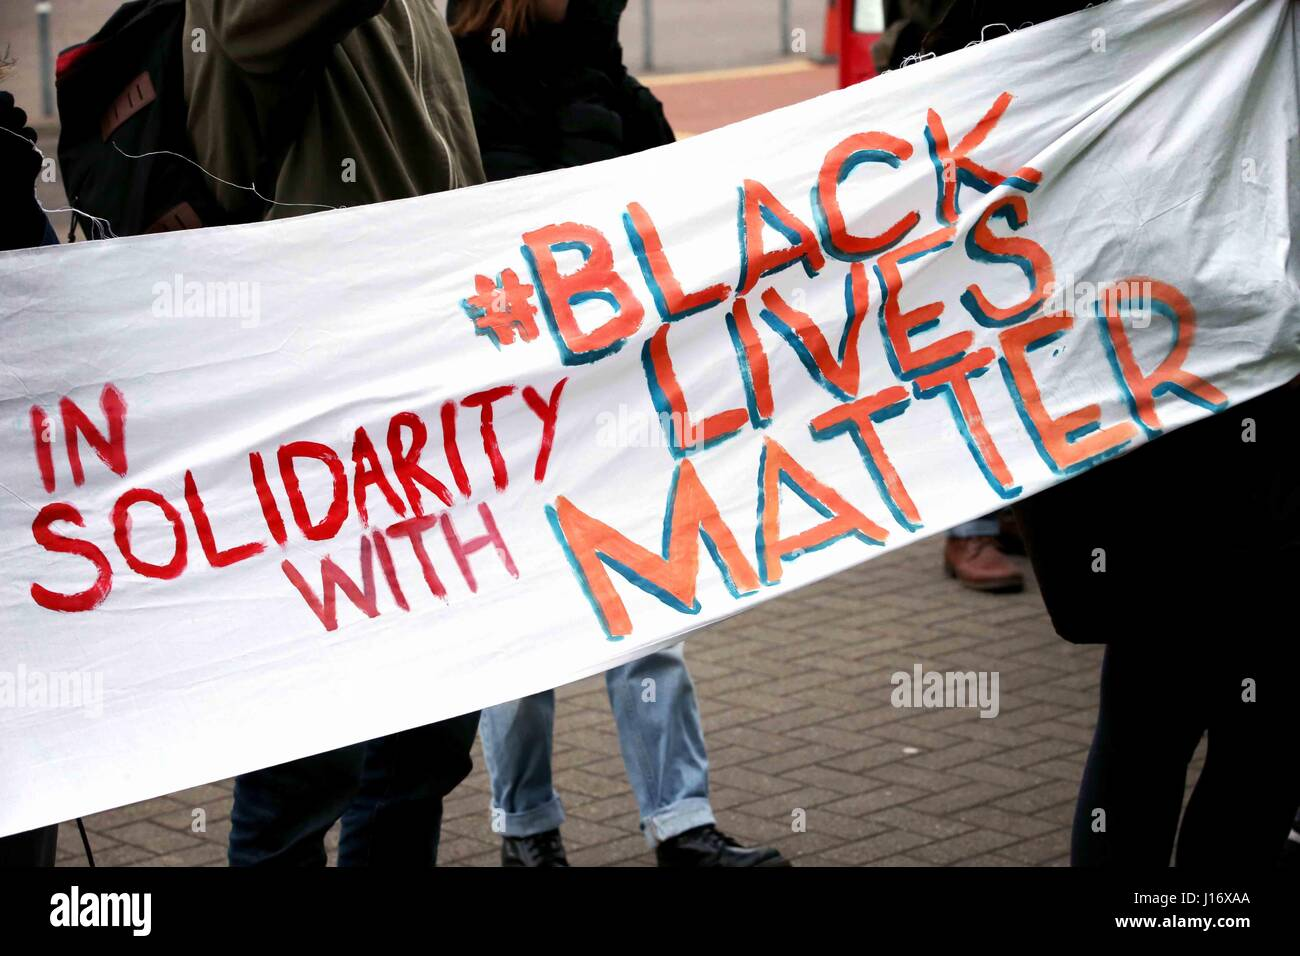 People hold up a sign reading 'In solidarity with Black Lives Matter'. - Stock Image